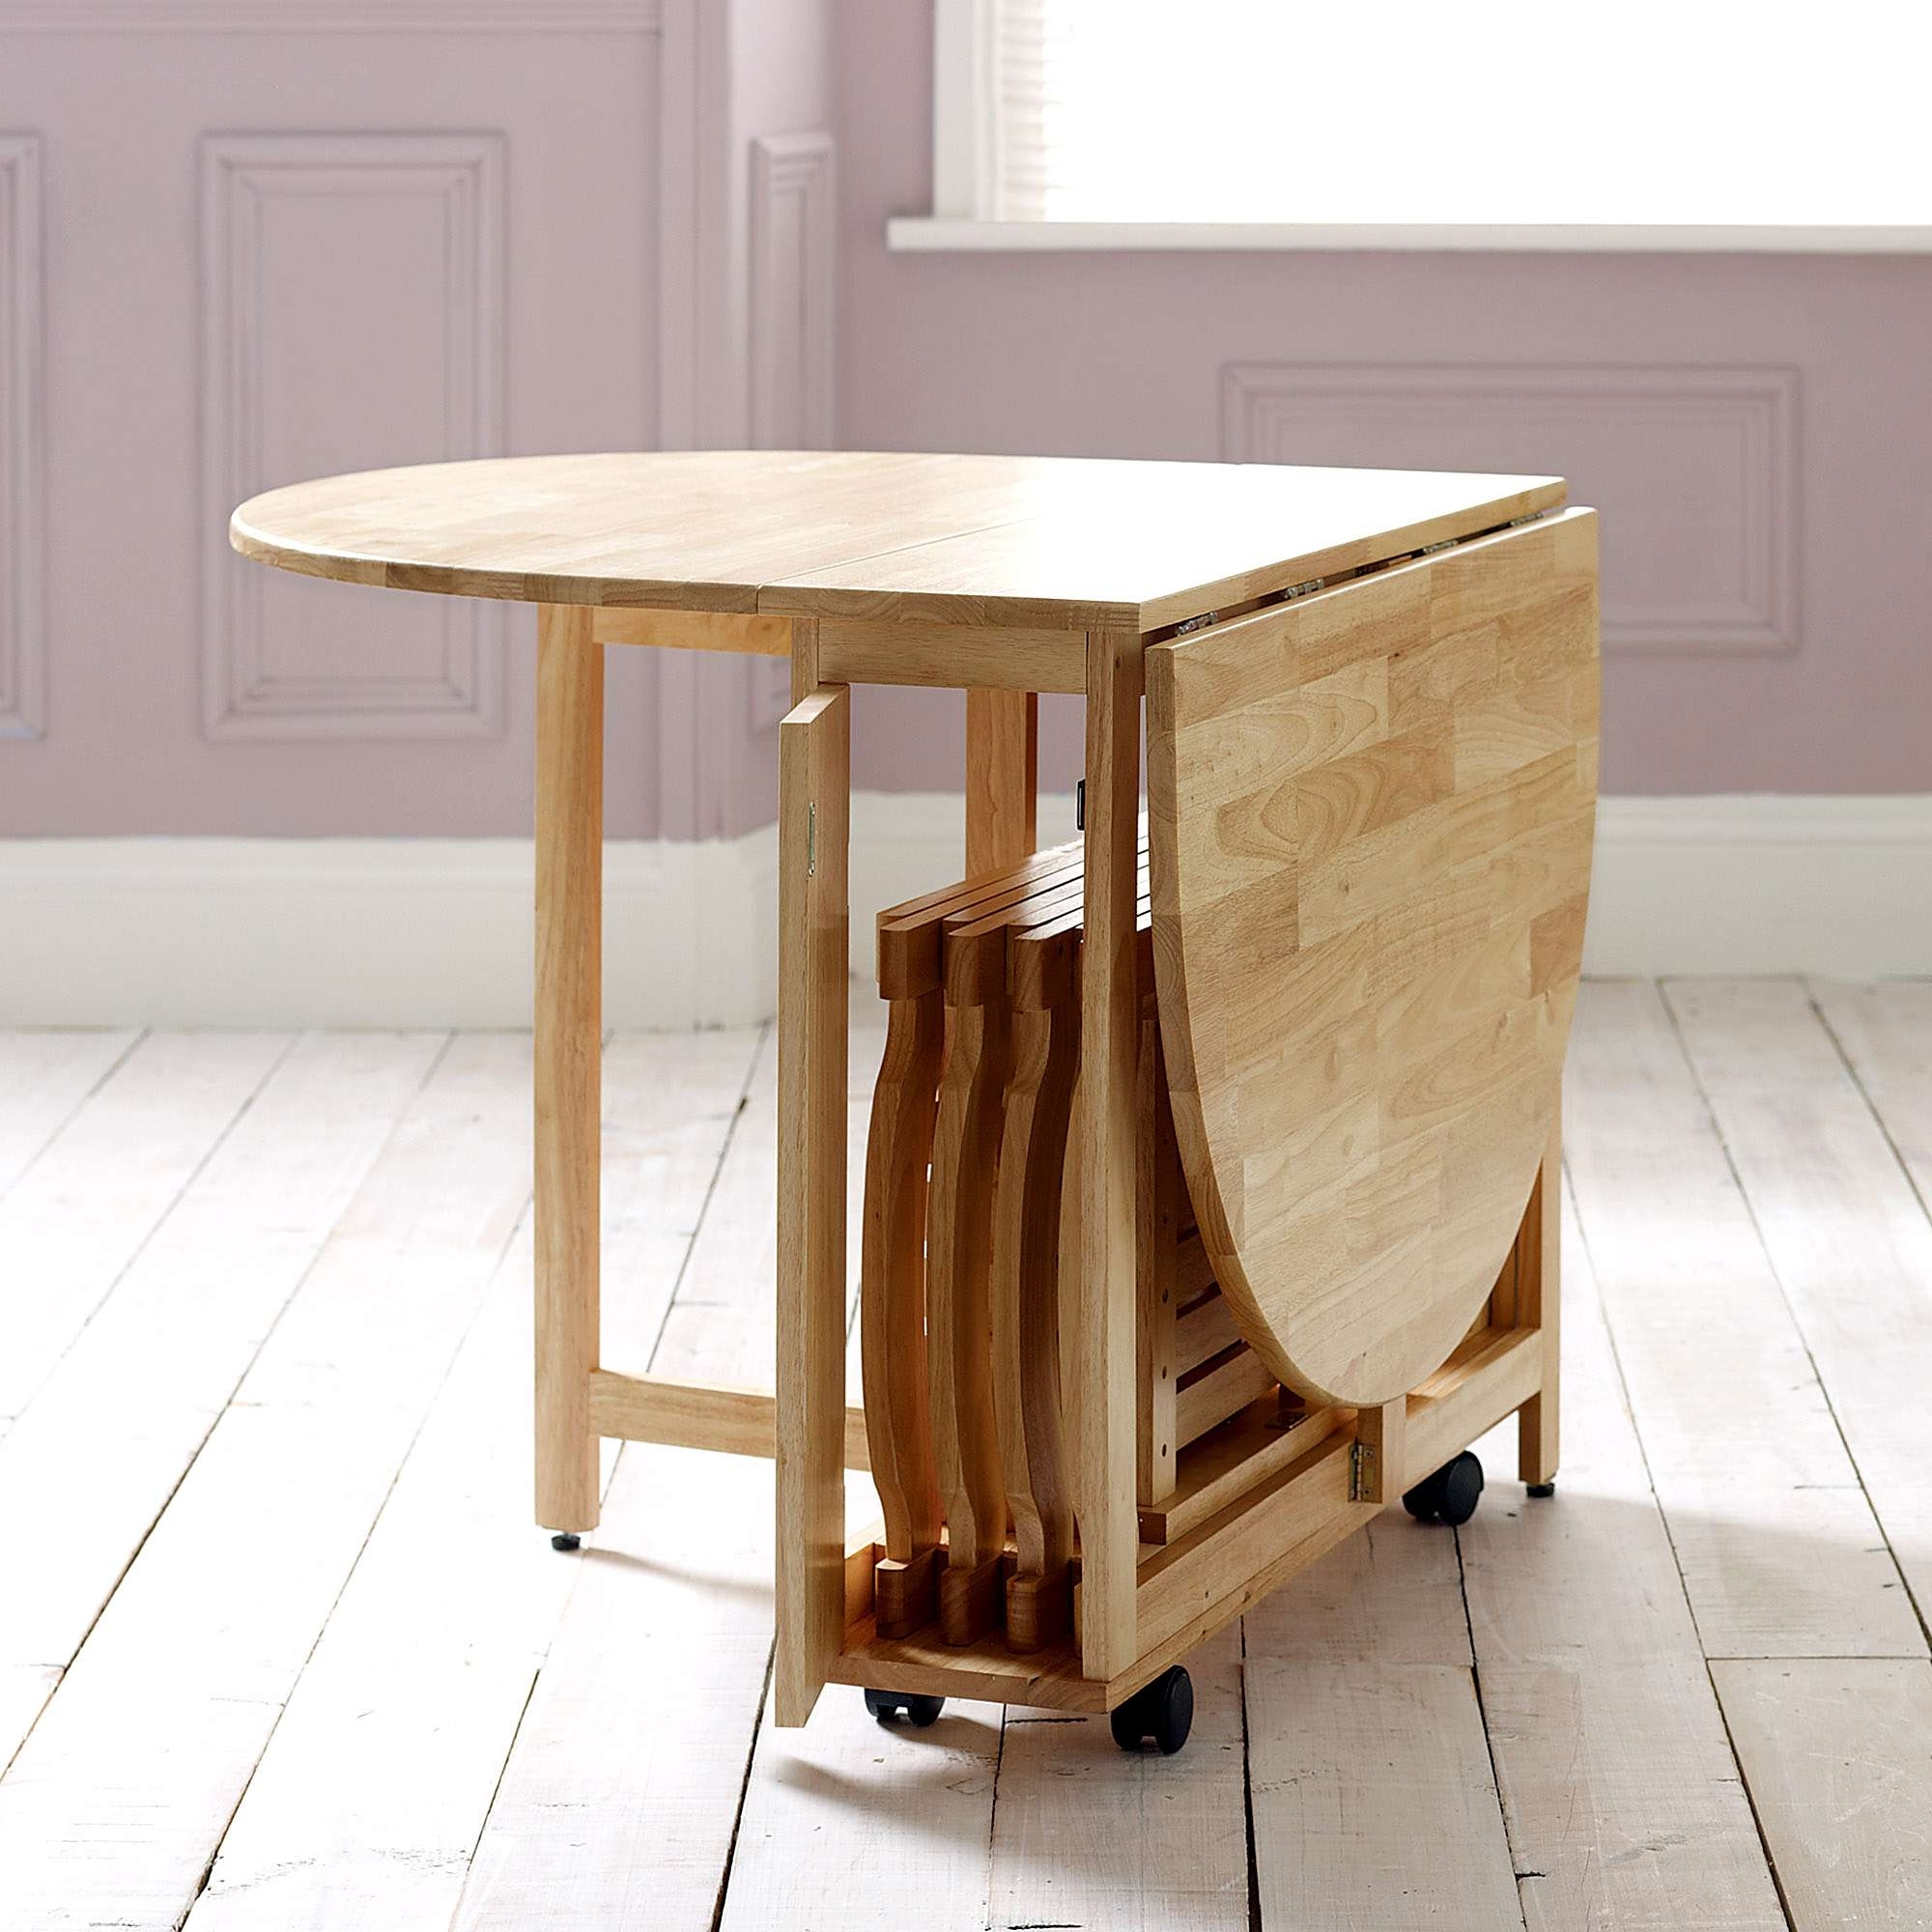 Choose A Folding Dining Table For A Small Space – Adorable Home Inside Most Recently Released Cheap Folding Dining Tables (View 5 of 25)